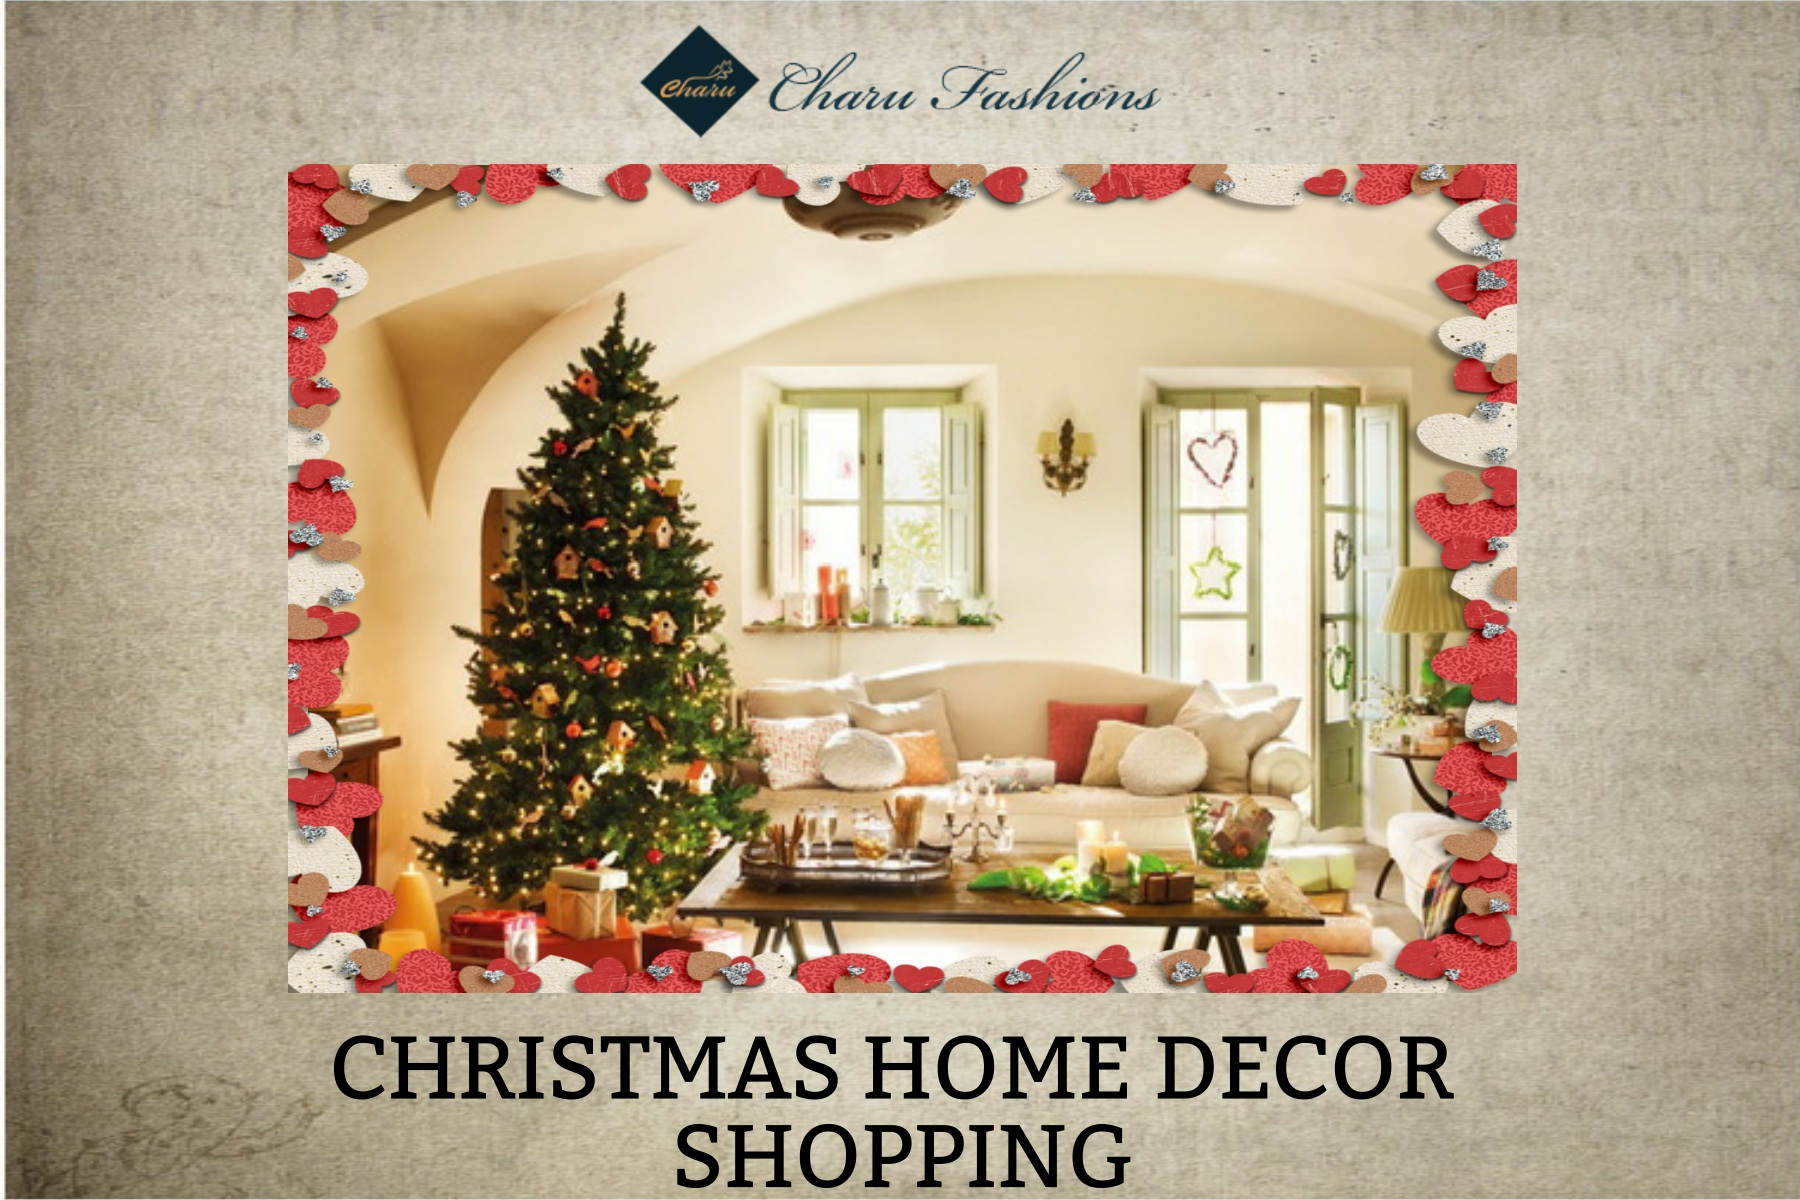 Christmas 2015 wholesale home decor items charu fashions for Best home decor blogs 2015